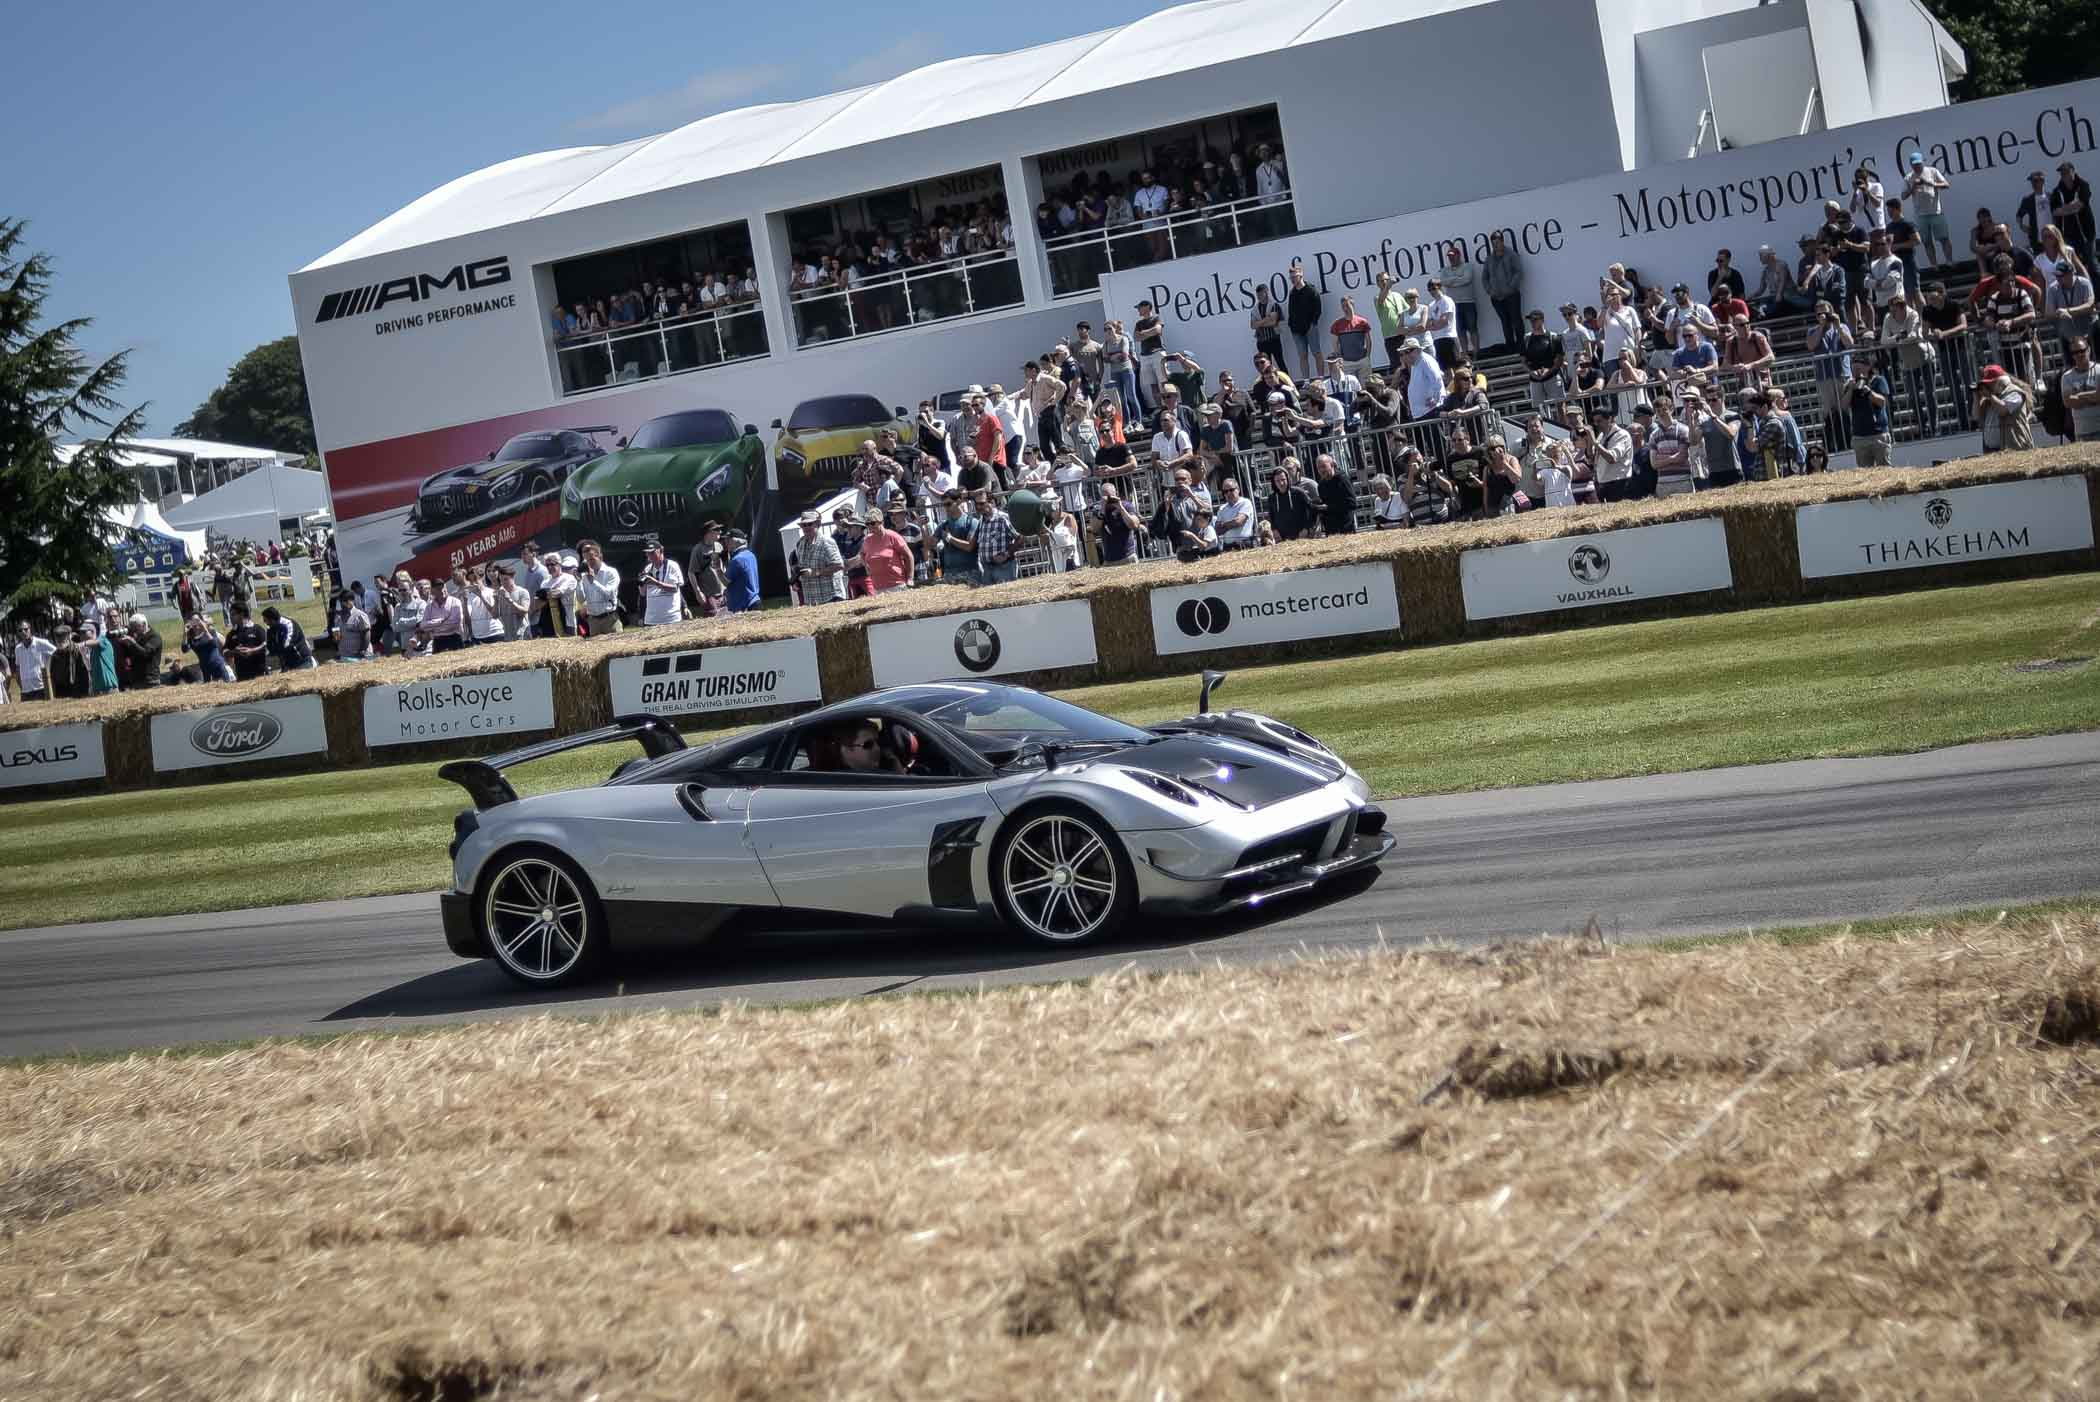 Goodwood Festival of Speed x Montblanc - photo report - 17